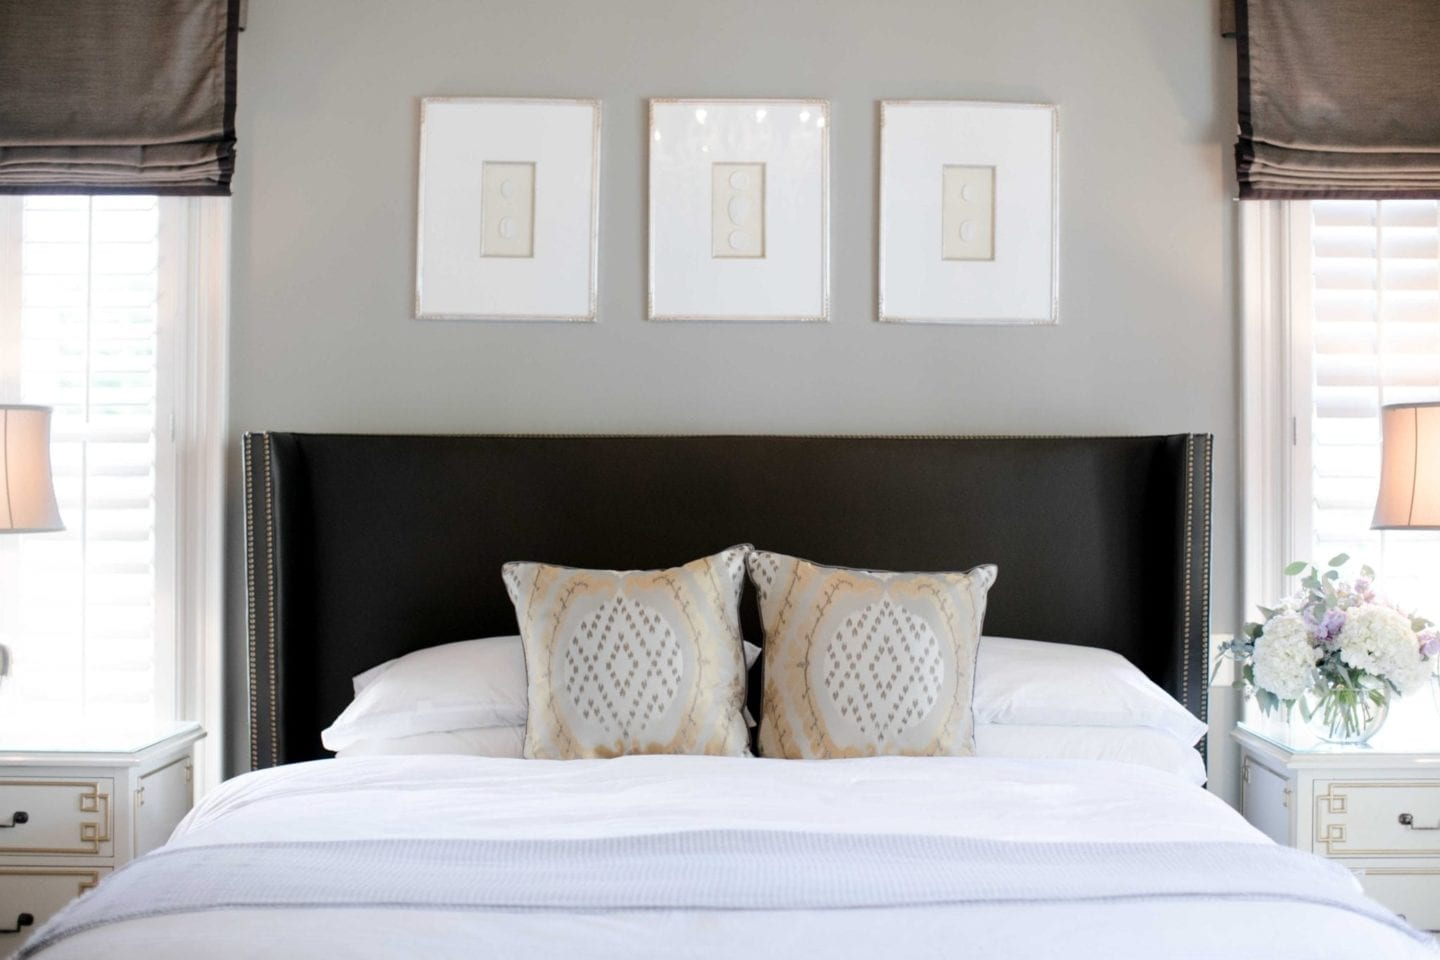 How to make a bed using the best white bedding from Bloomingdales linens. Gold and gray throw pillows on Lee Industries headboard. Gray silk bed with Intaglio prints above master bed.